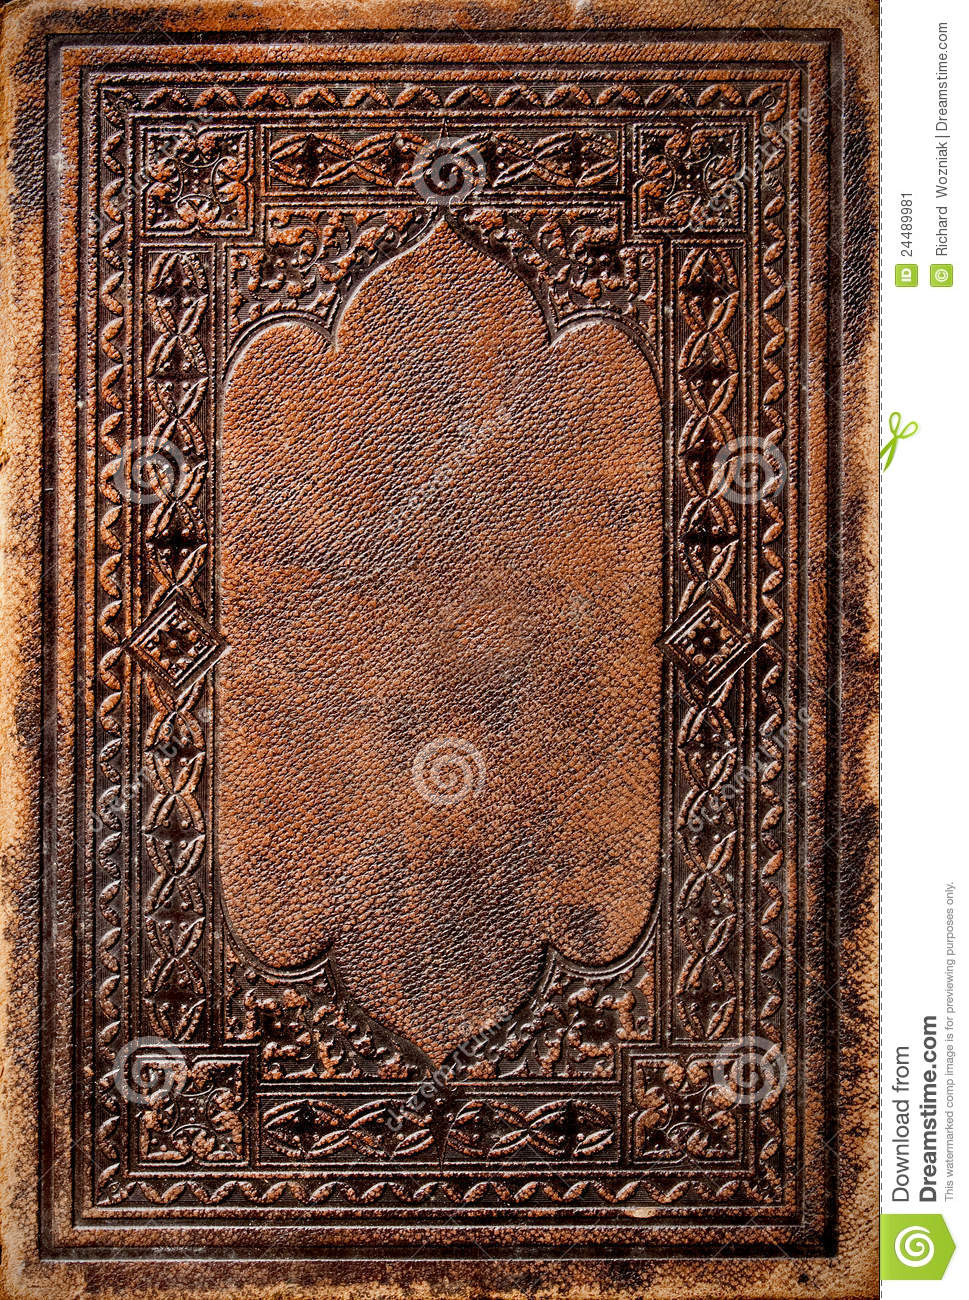 Pictures Of Old Book Covers : Old book cover stock image of fashioned background